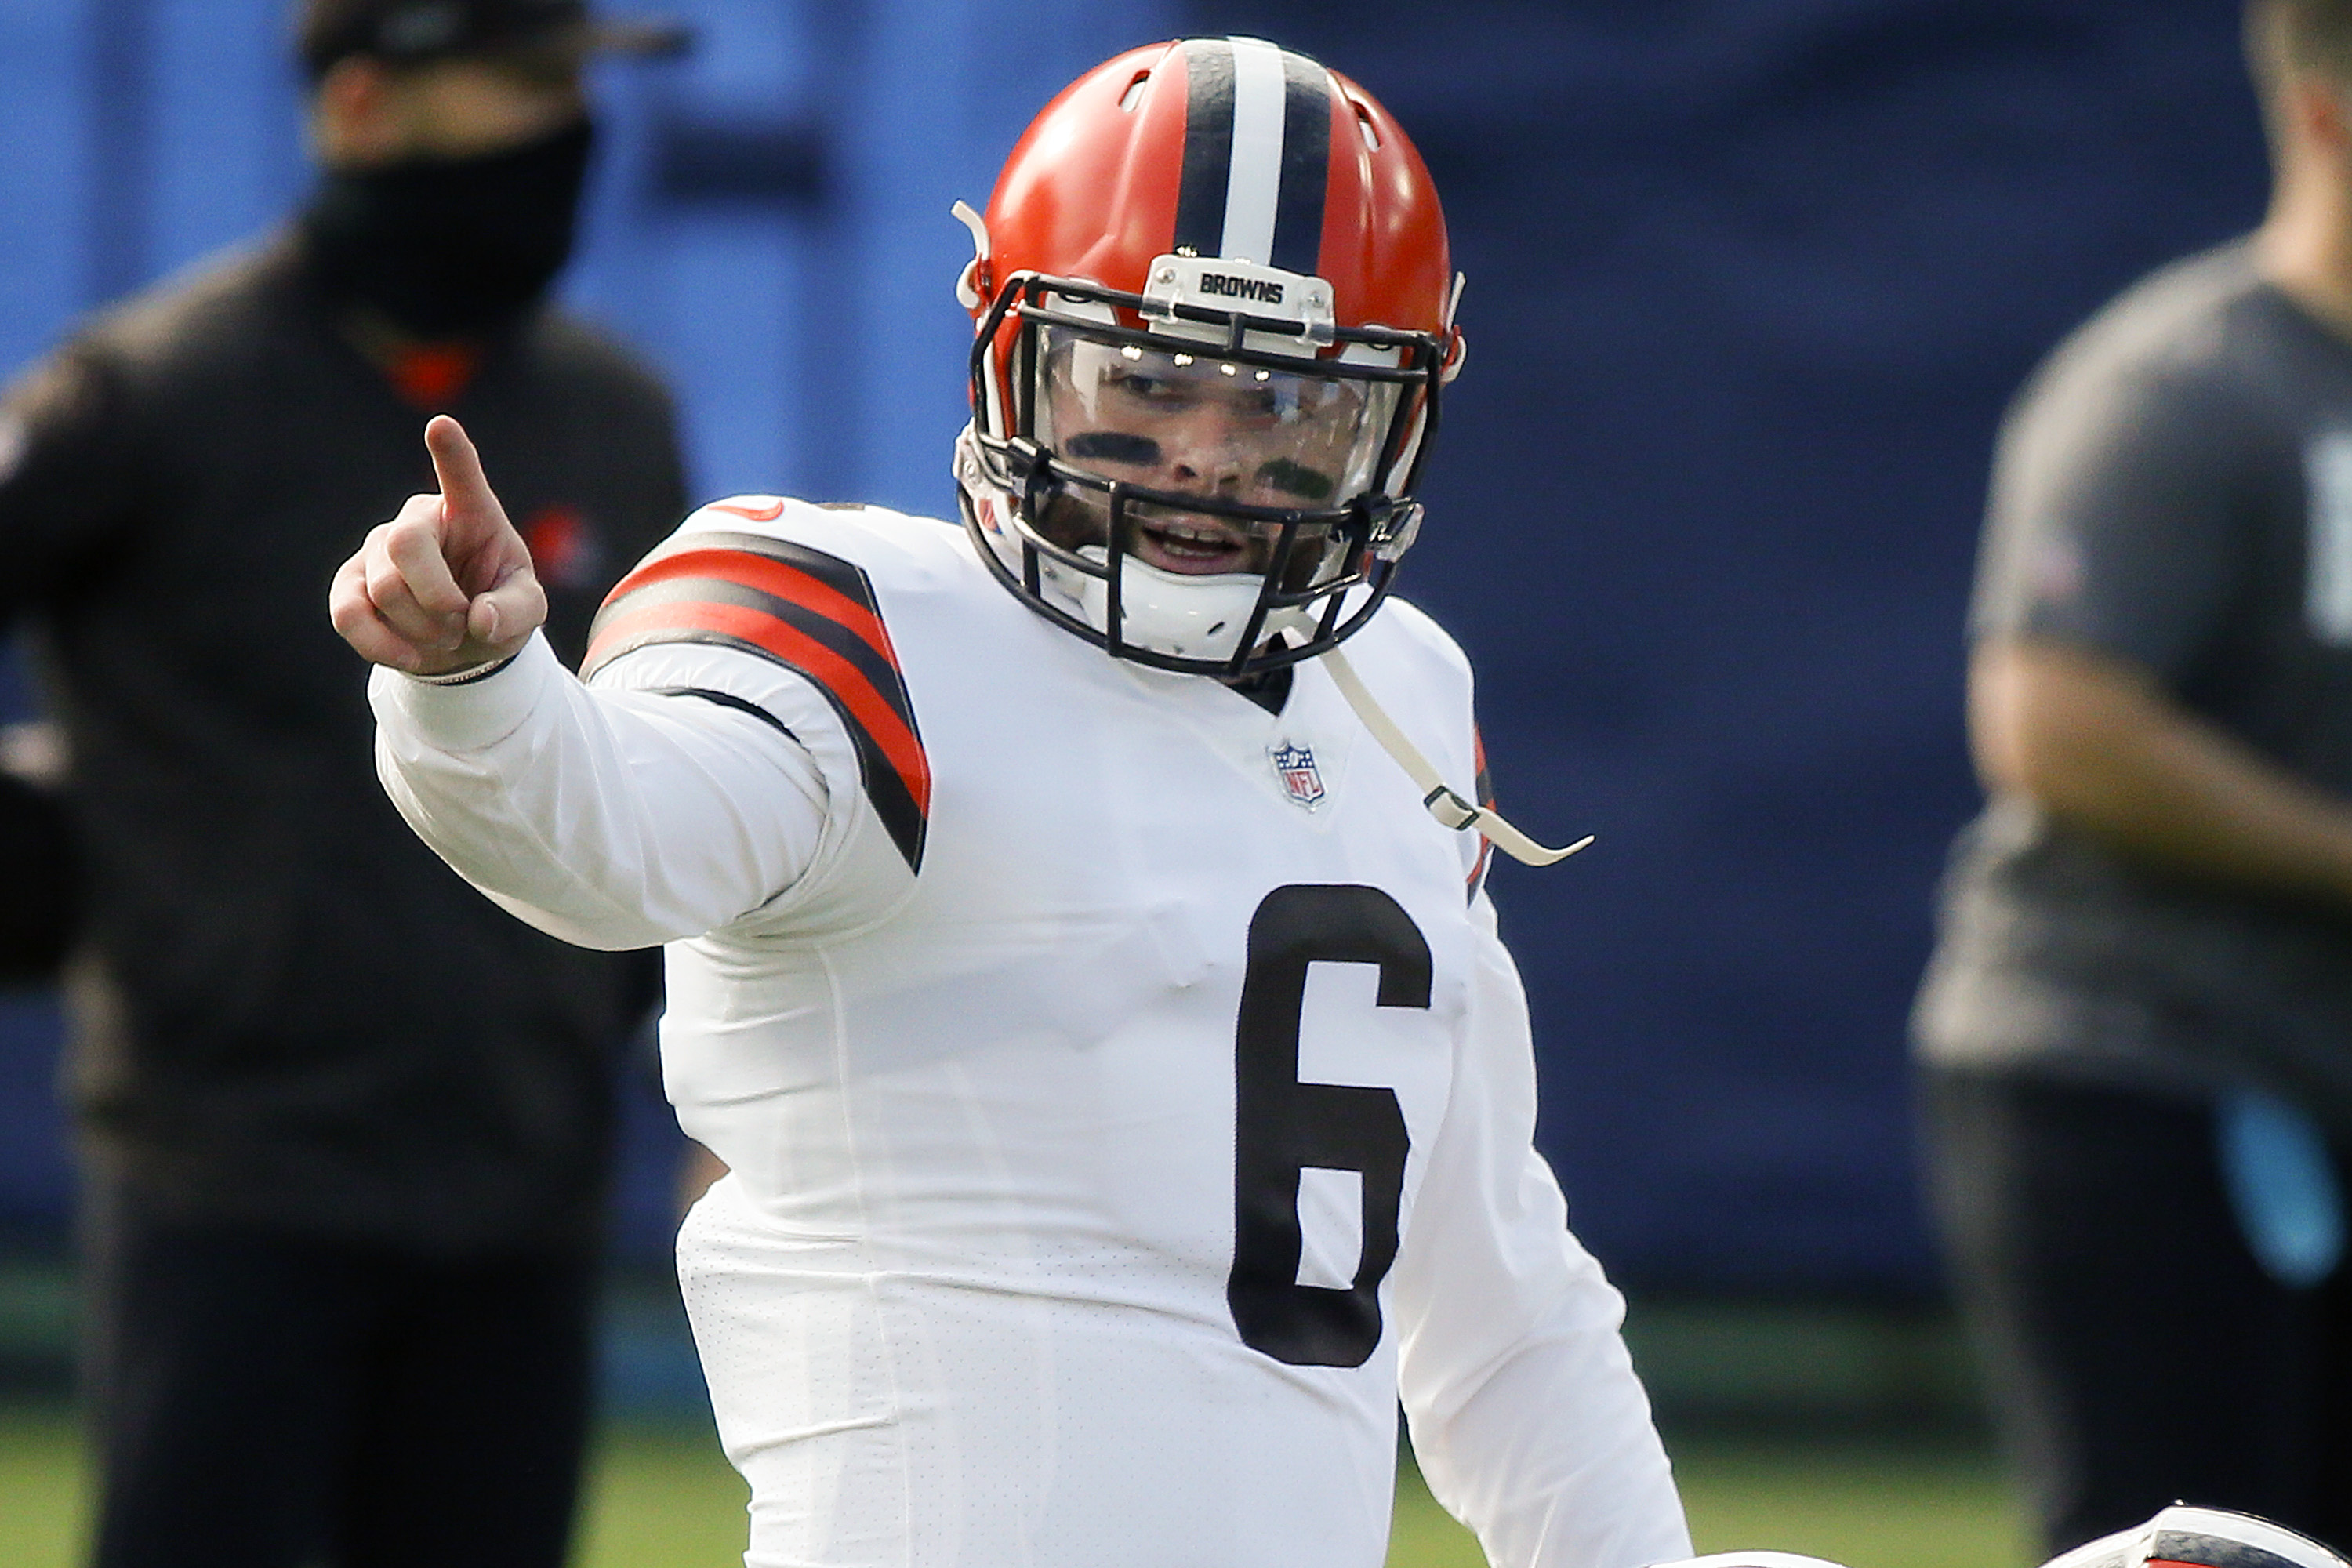 Quarterback Baker Mayfield #6 of the Cleveland Browns warms up prior to a game against the Tennessee Titans at Nissan Stadium on December 06, 2020 in Nashville, Tennessee.